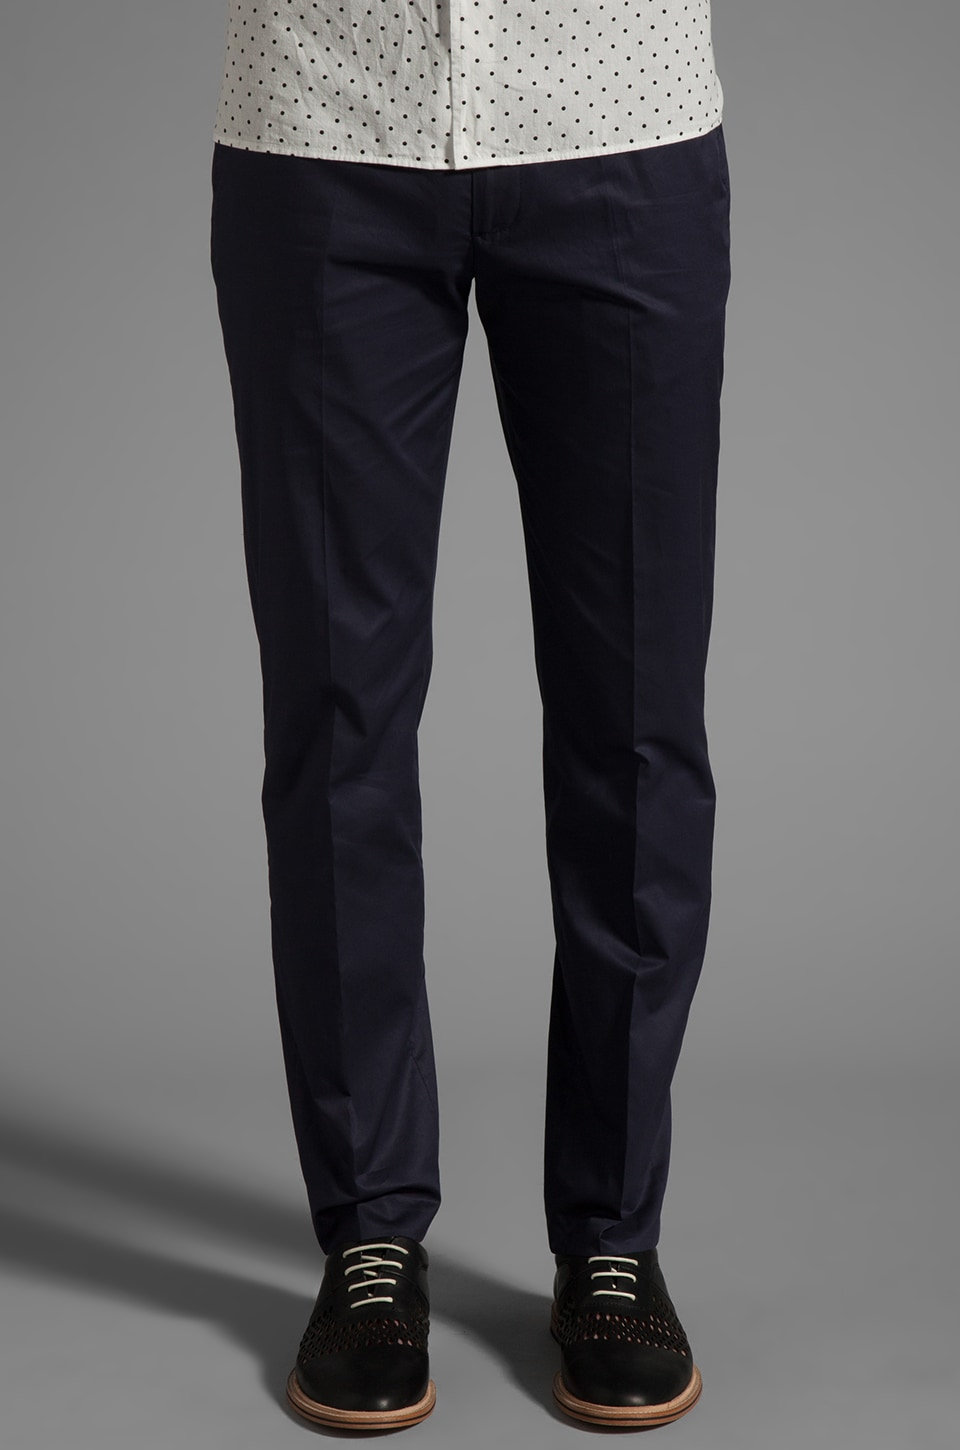 Marc by Marc Jacobs Adam Cotton Pants in Violet Indigo